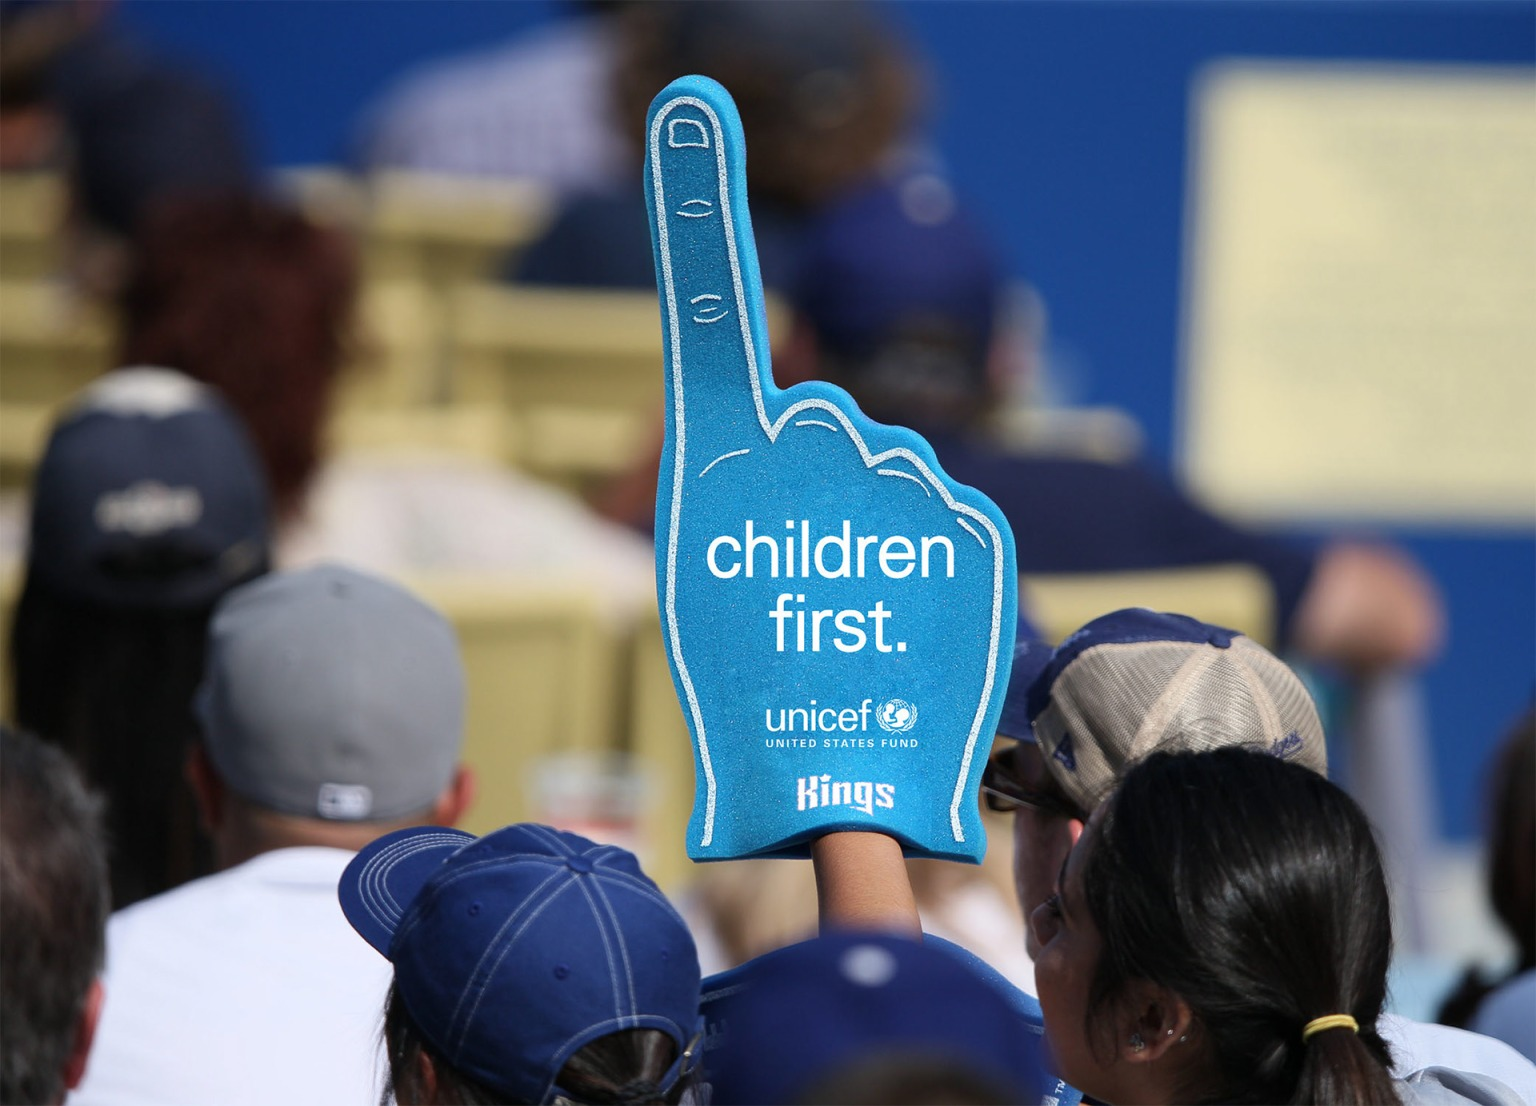 UNICEF - Children First